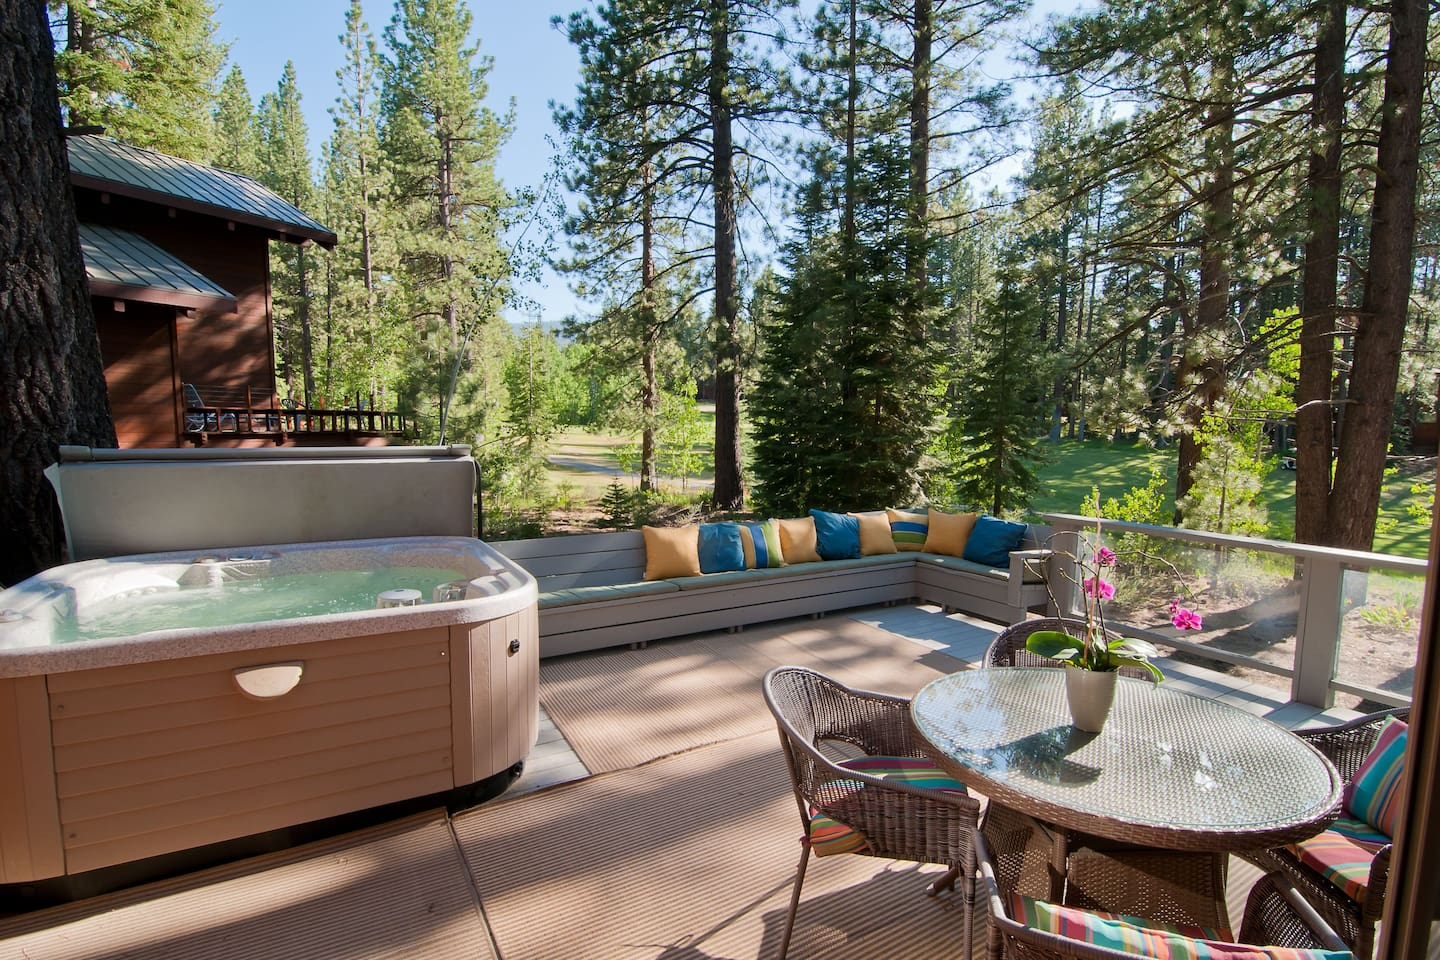 Hot tub on the deck overlooking the golf course.